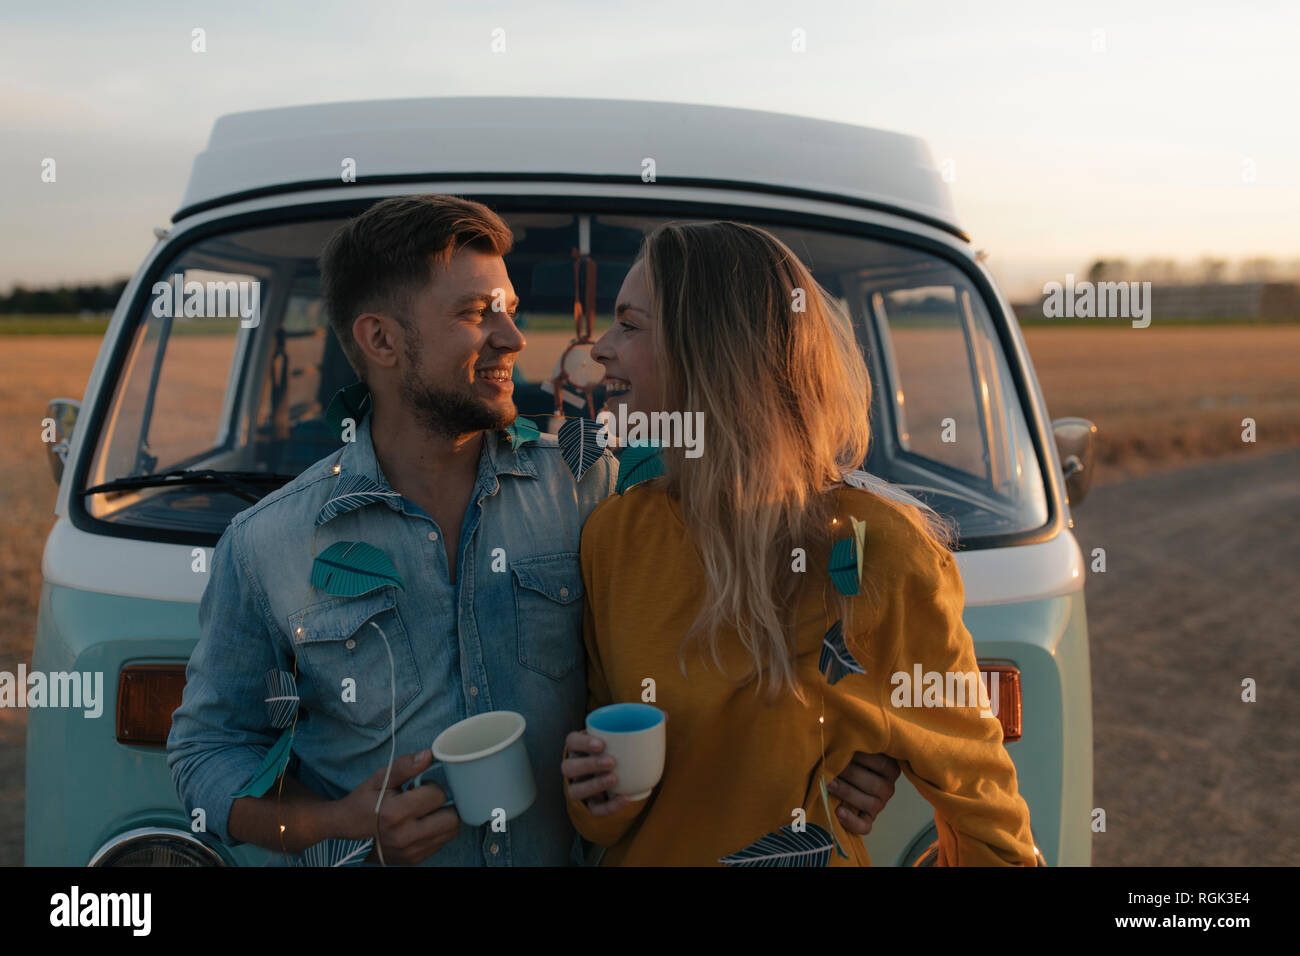 Happy young couple at camper van in rural landscape at sunset Stock Photo